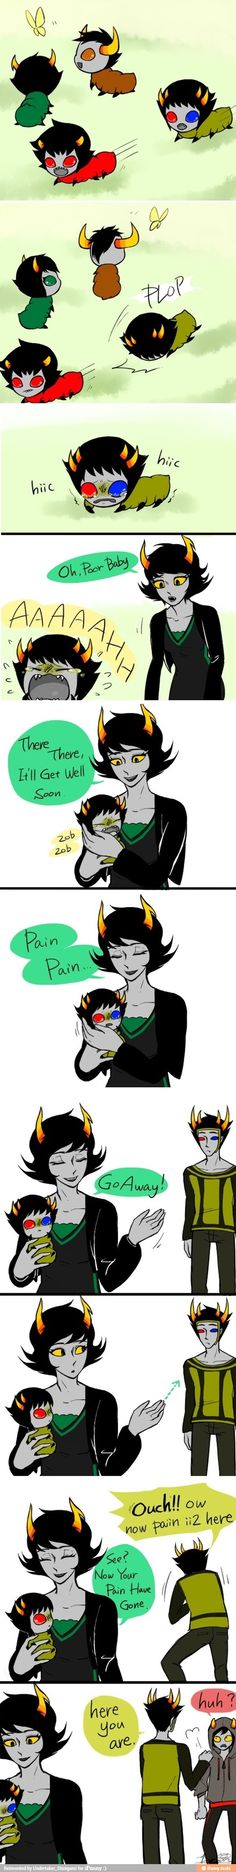 That's so cute Grub's every where. I like how Psiioniic gives the pain to Signless. http://q-dormir.tumblr.com/post/50168466540/is-play-date-like-this-3